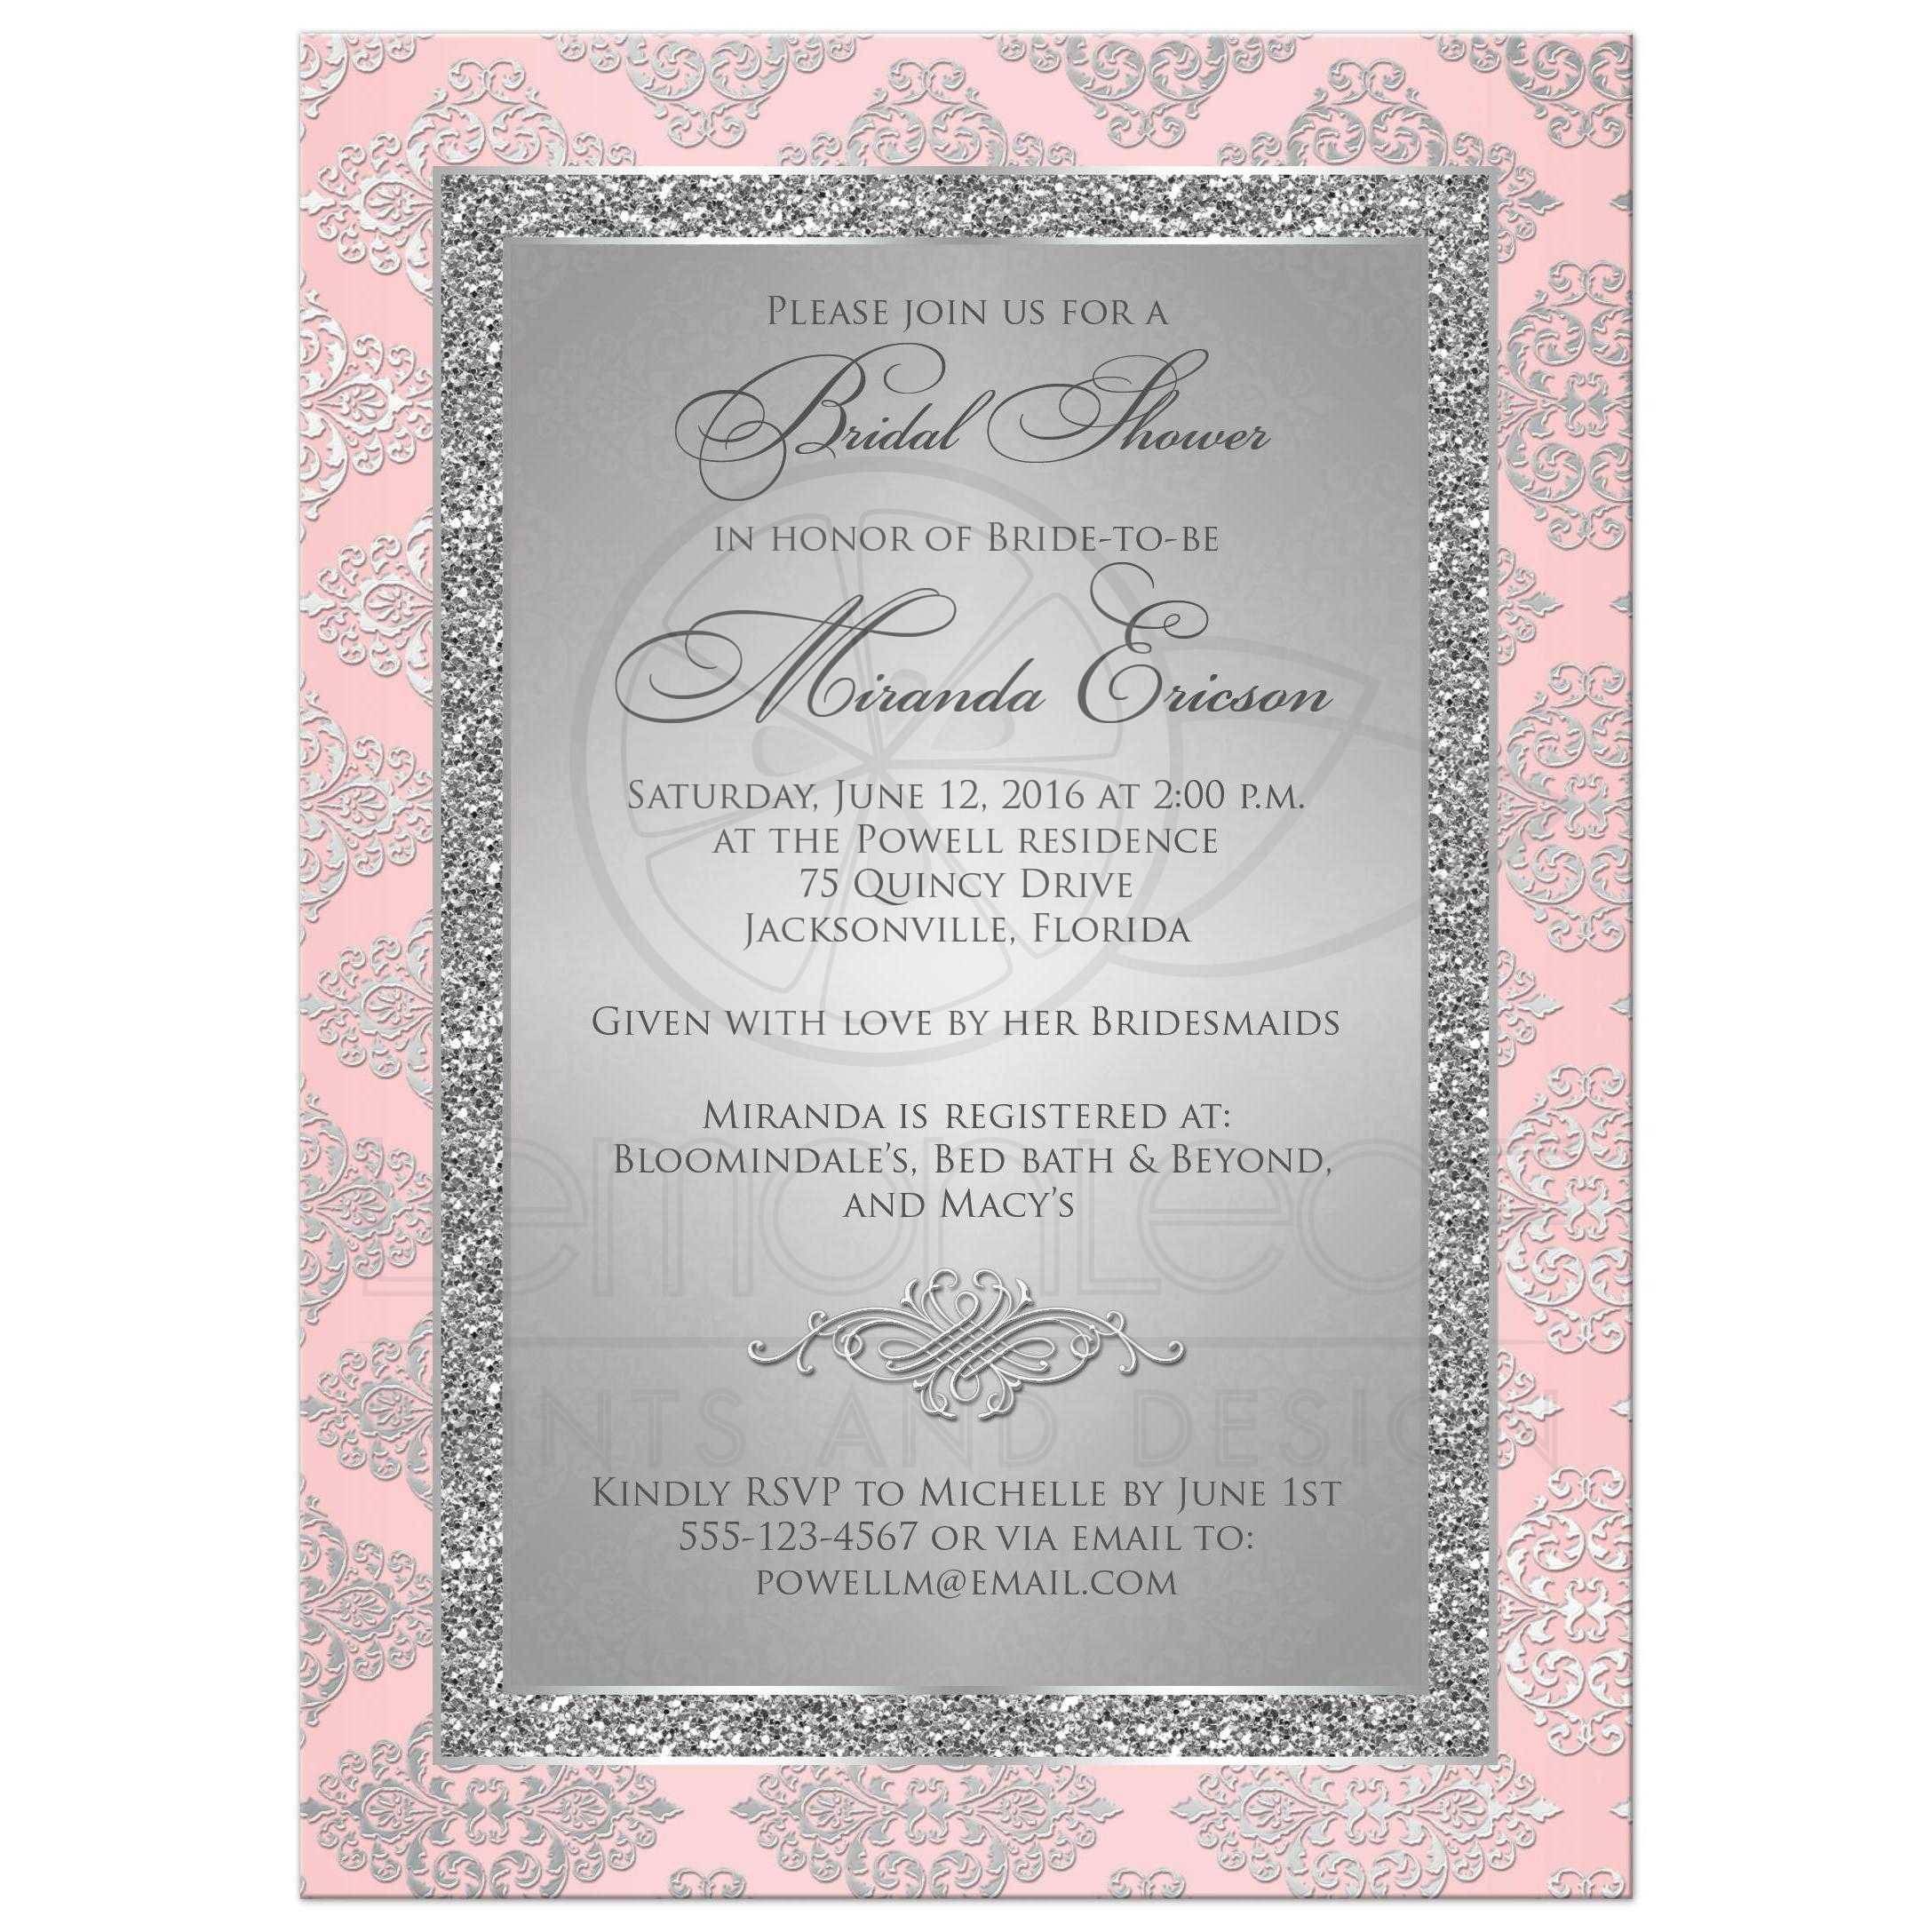 Bridal Shower Invitation Blush Pink Silver Gray Damask Faux